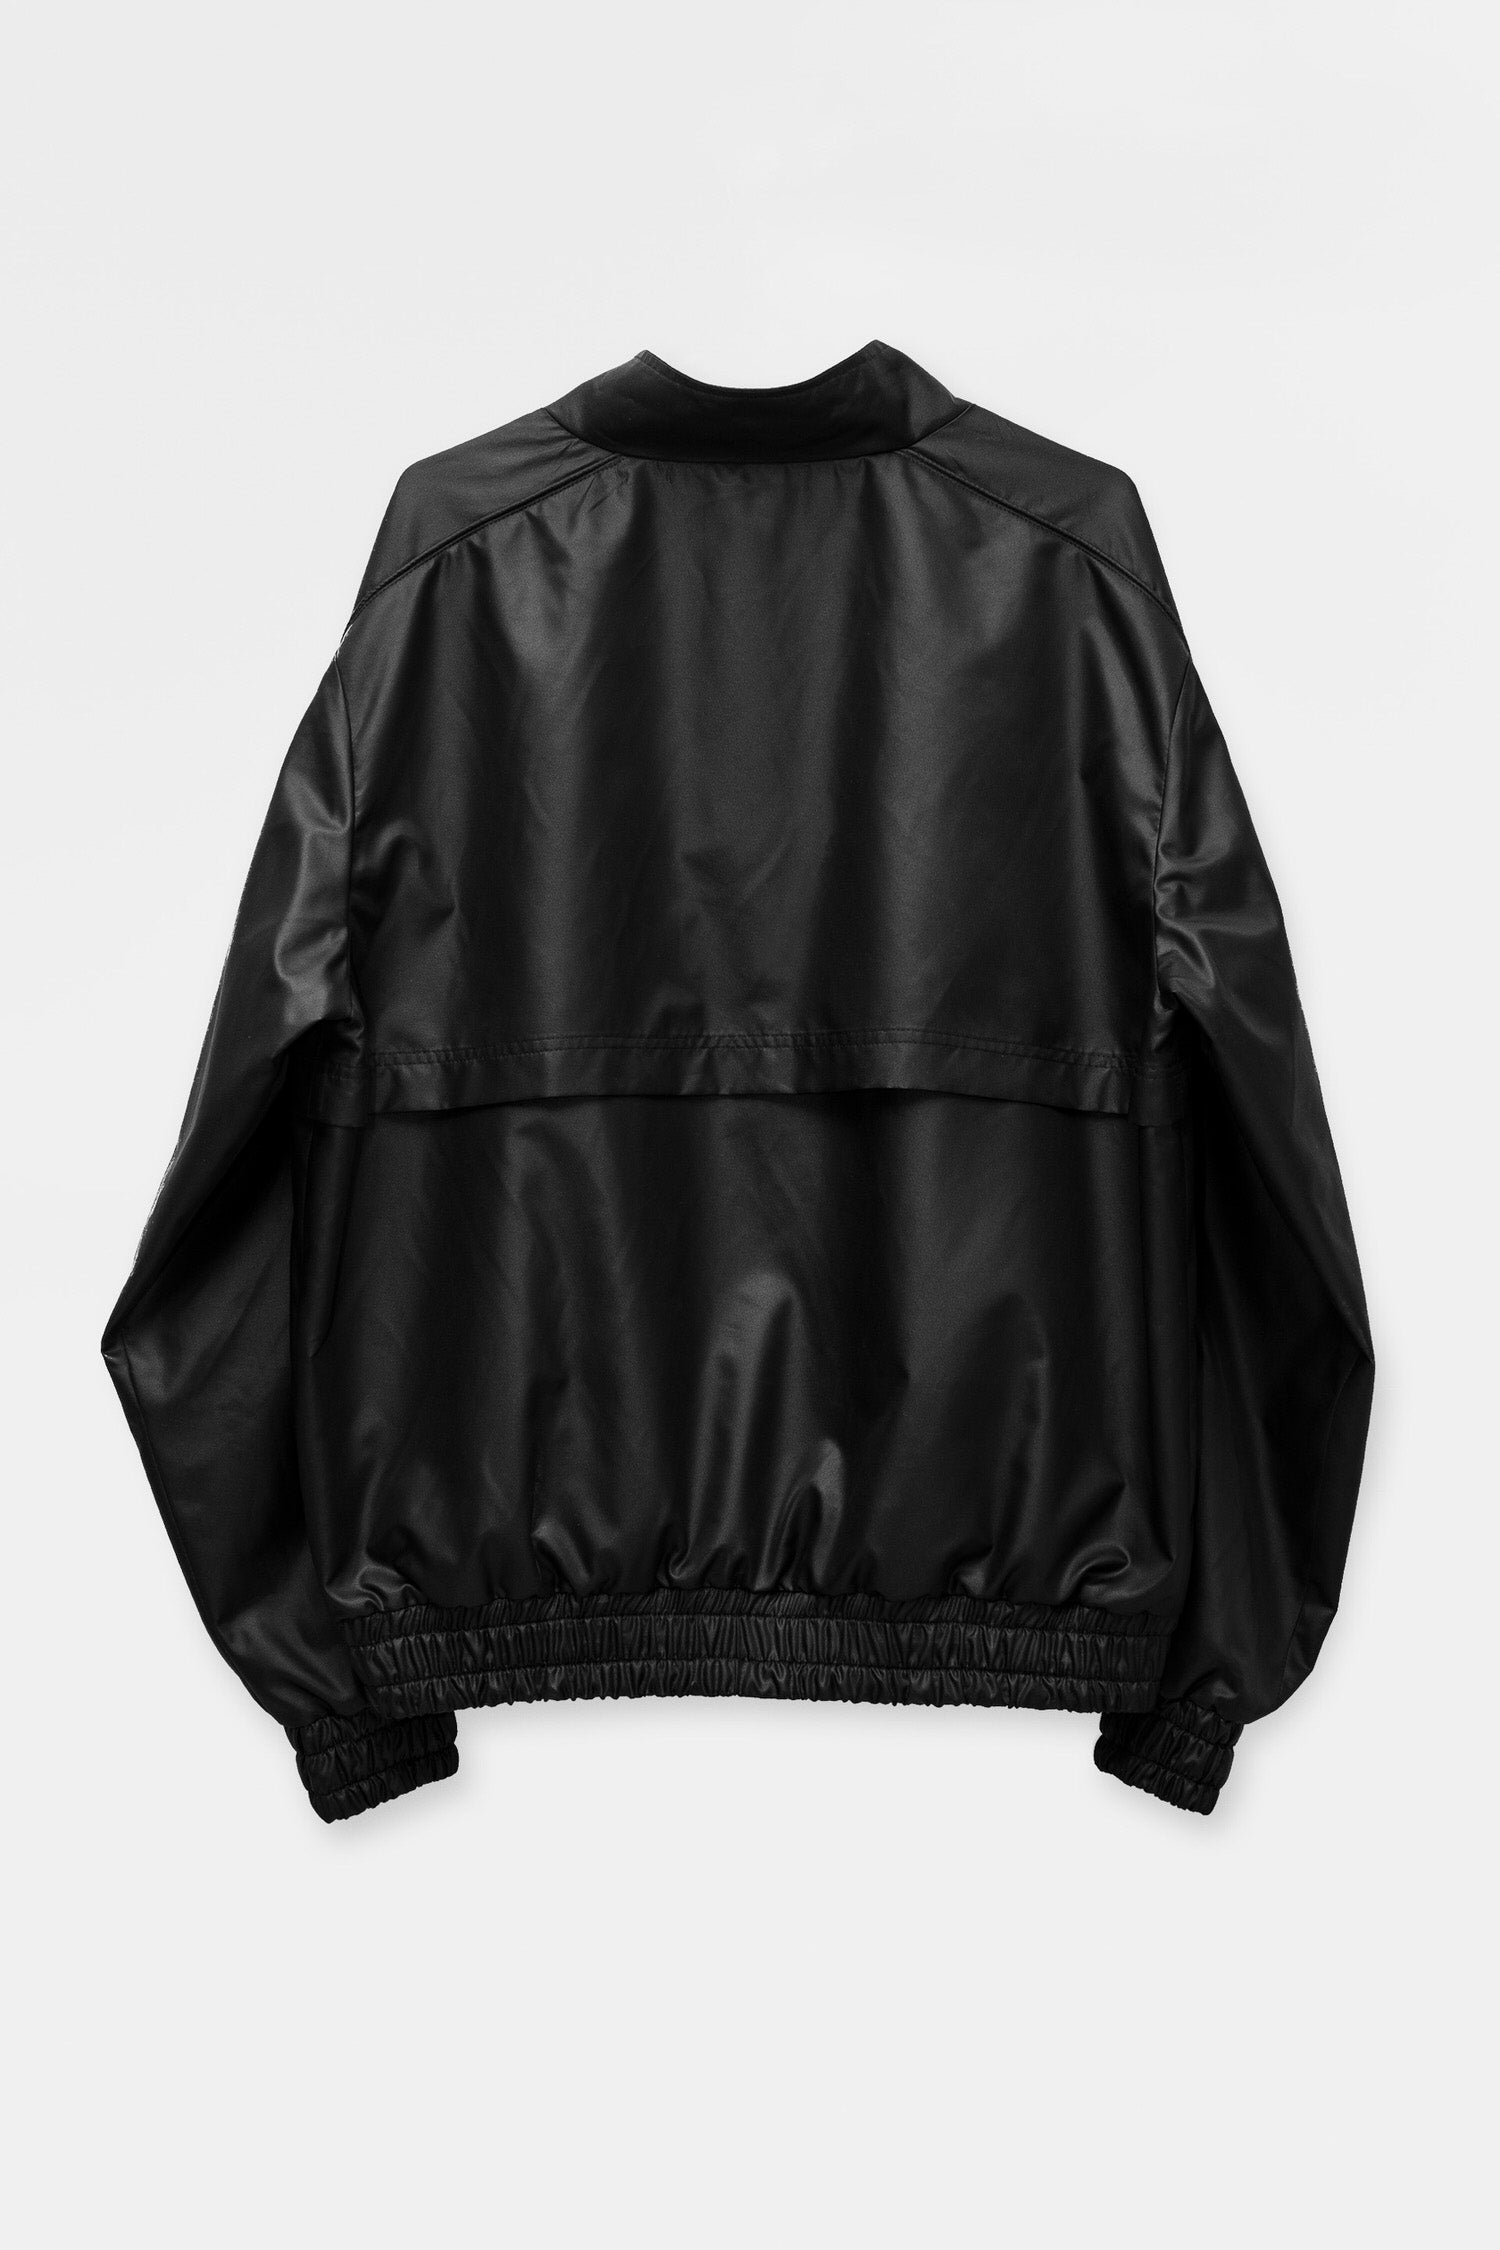 SEANNUNG - 十字擋風衣外套 Cross windbreaker jacket - Men